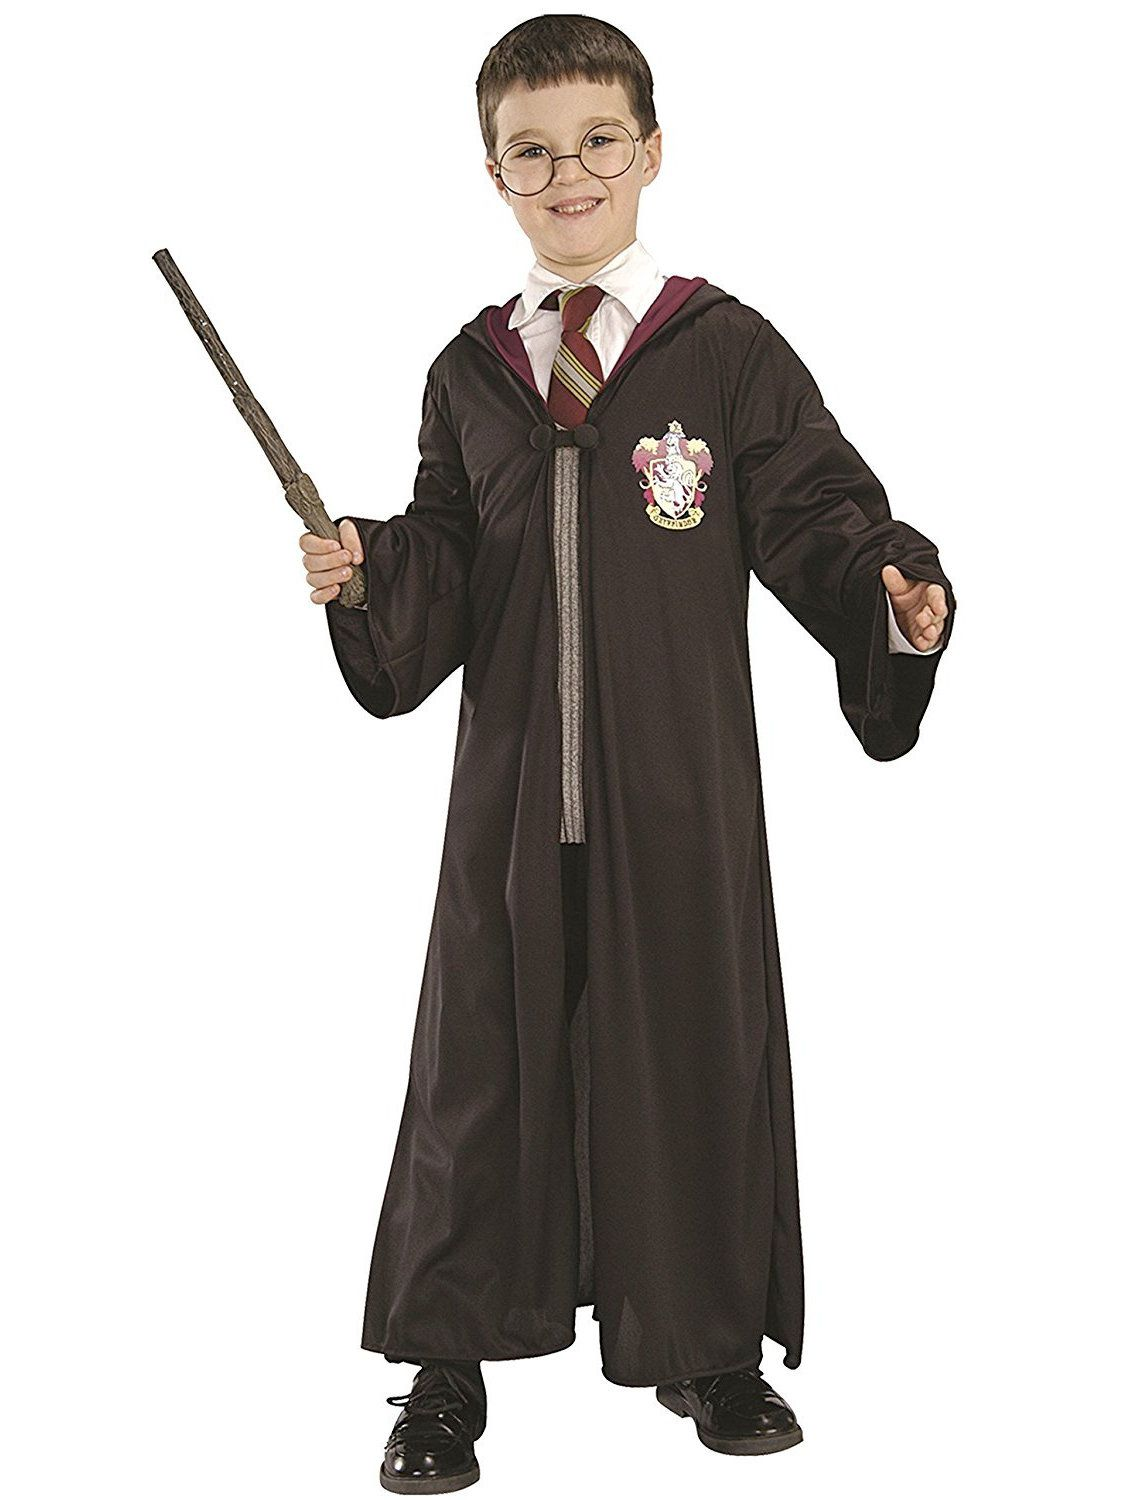 Harry Potter Costume For Children  sc 1 st  Wholesale Halloween Costumes : harry potter childrens costume  - Germanpascual.Com